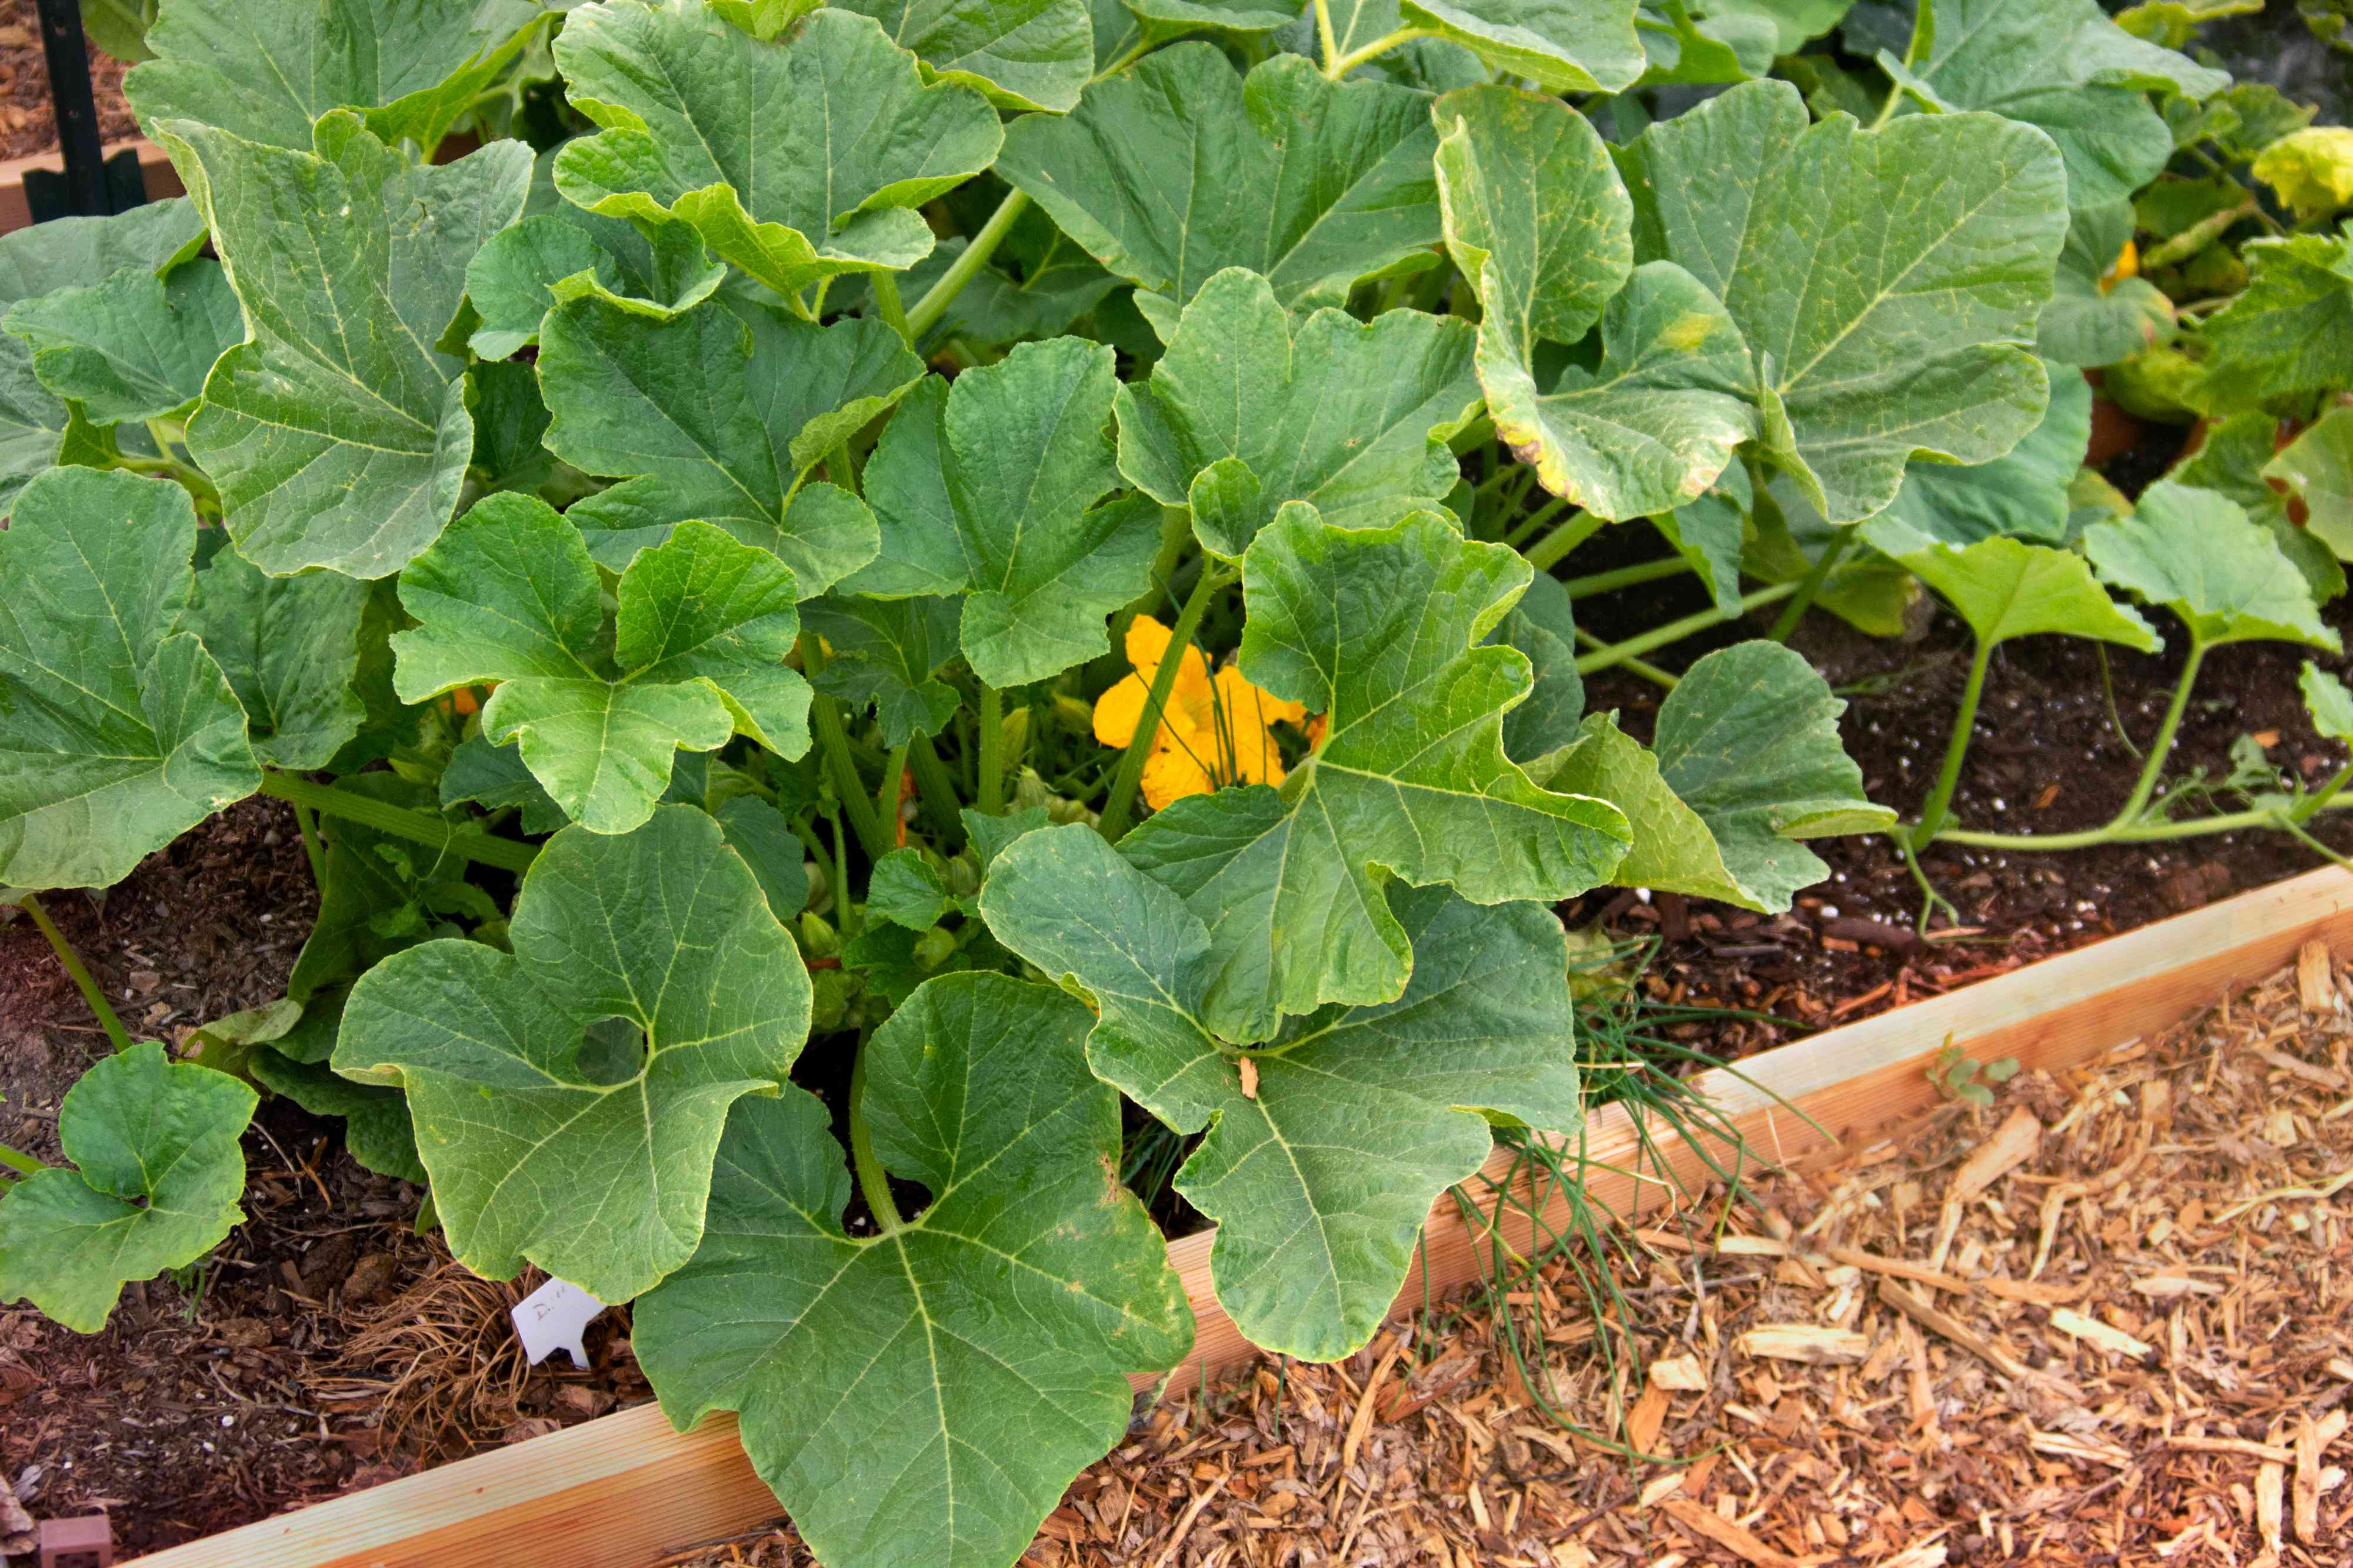 Patty pan squash plant with large leaves in garden